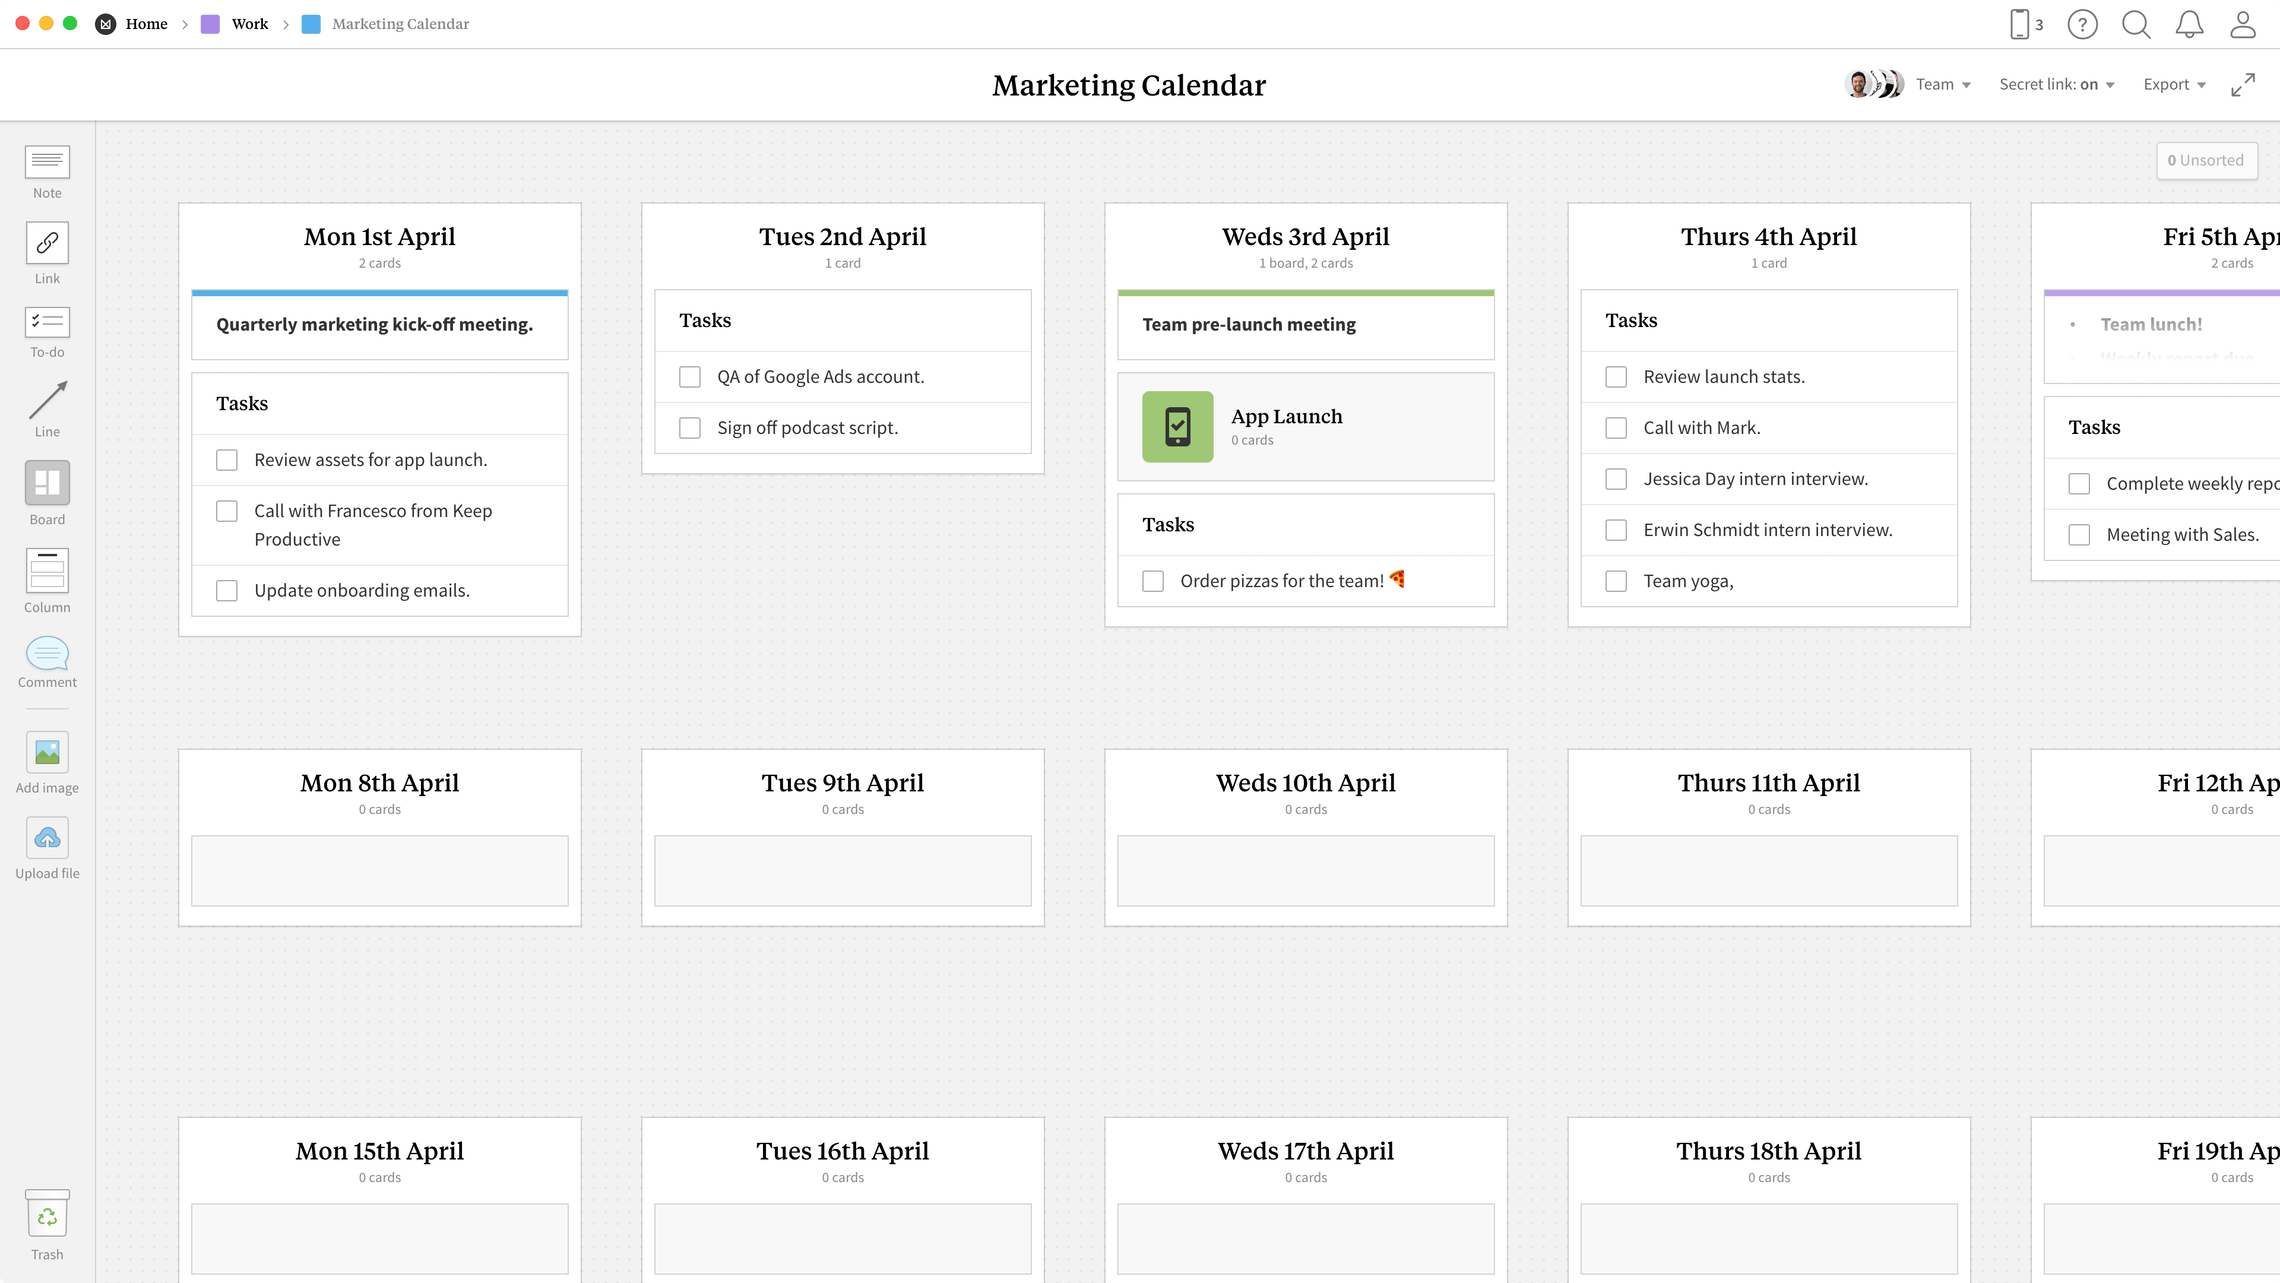 Marketing Calendar Template, within the Milanote app